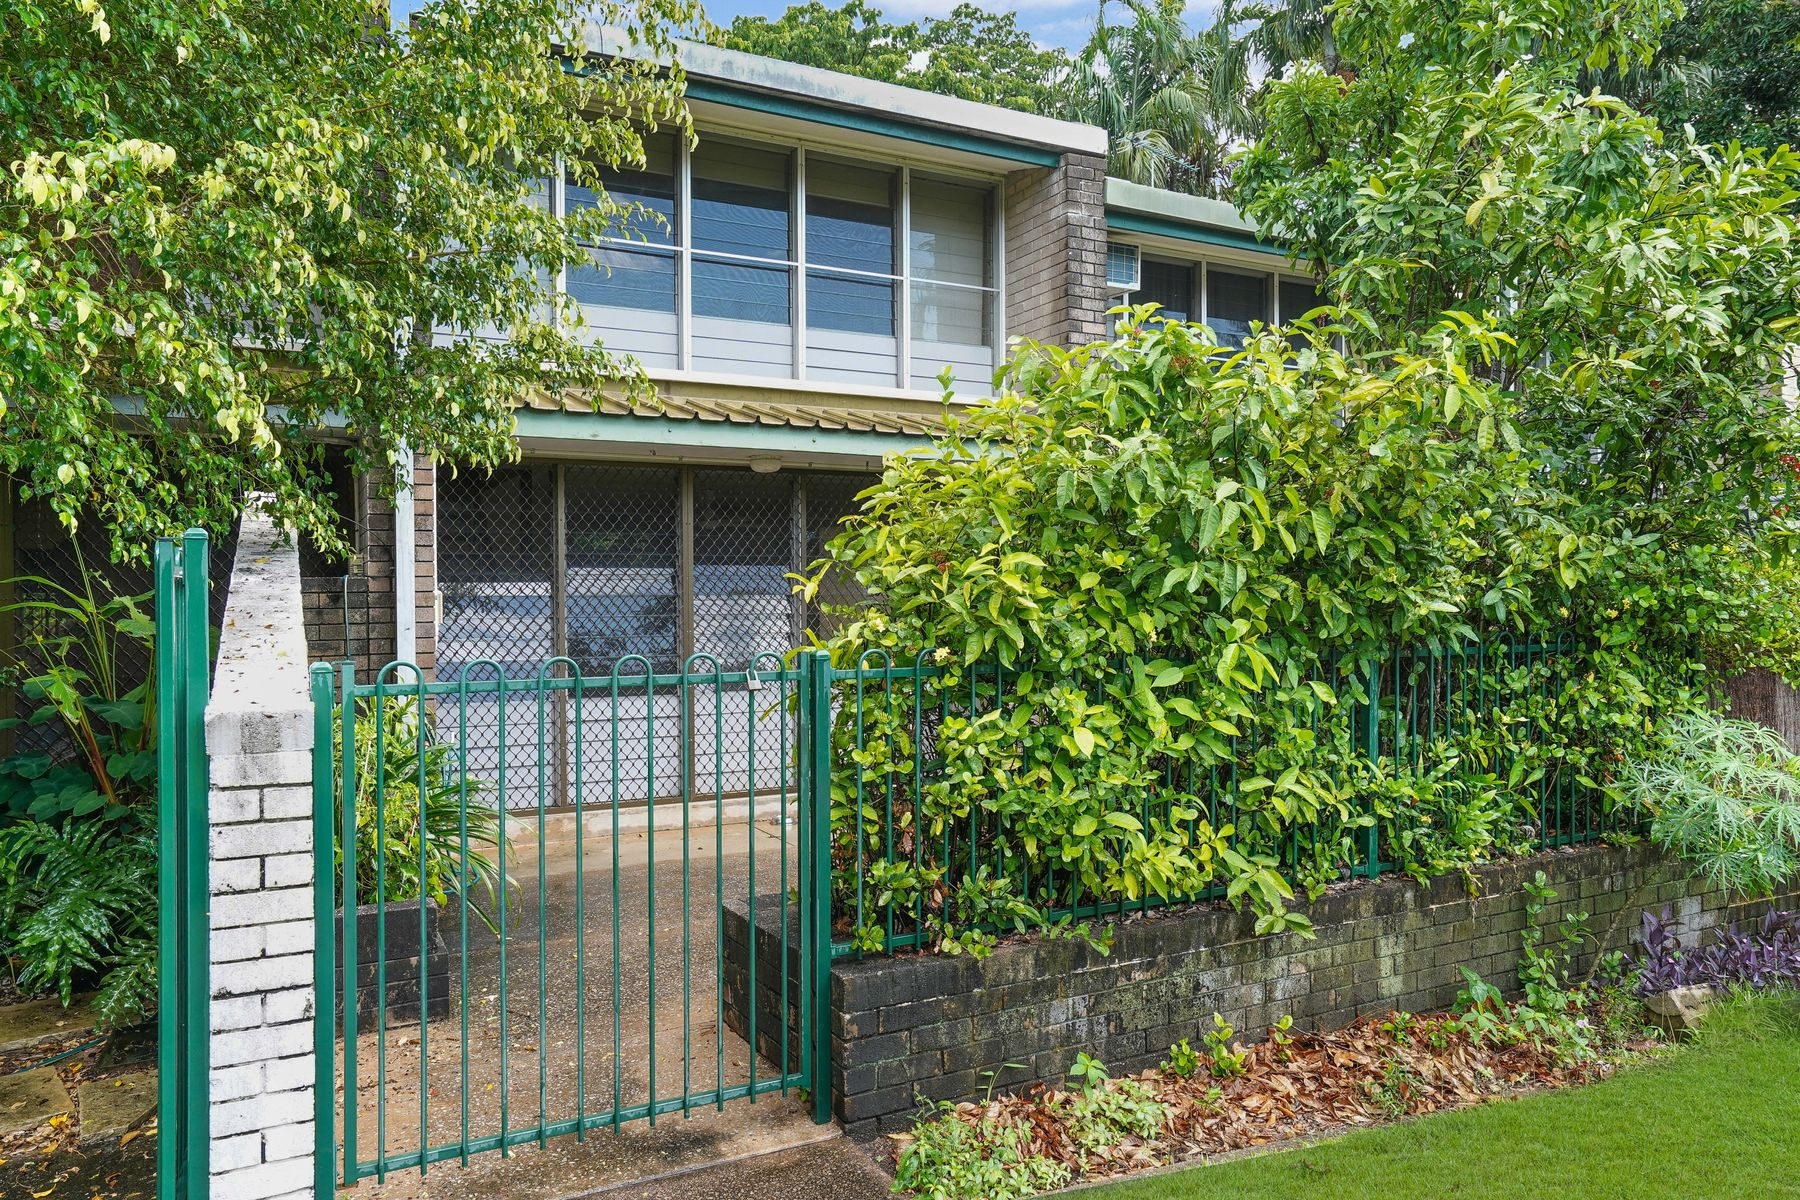 19/68 Ryland Road, Millner, NT 0810